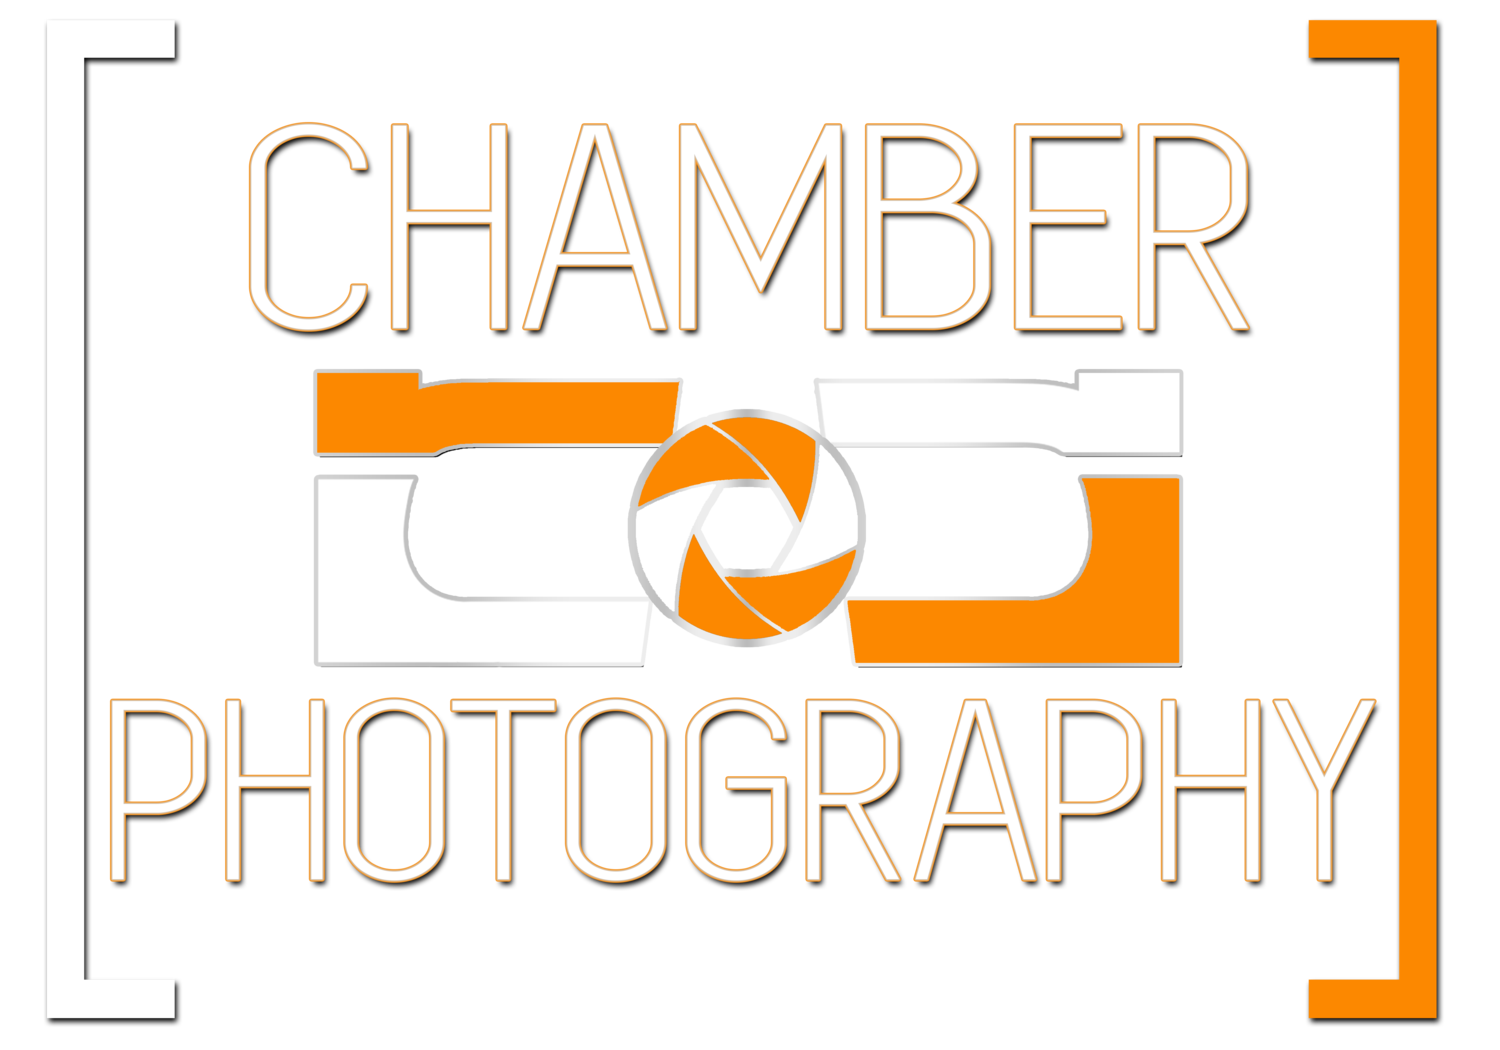 Chamber Photography| Central Florida Photographer